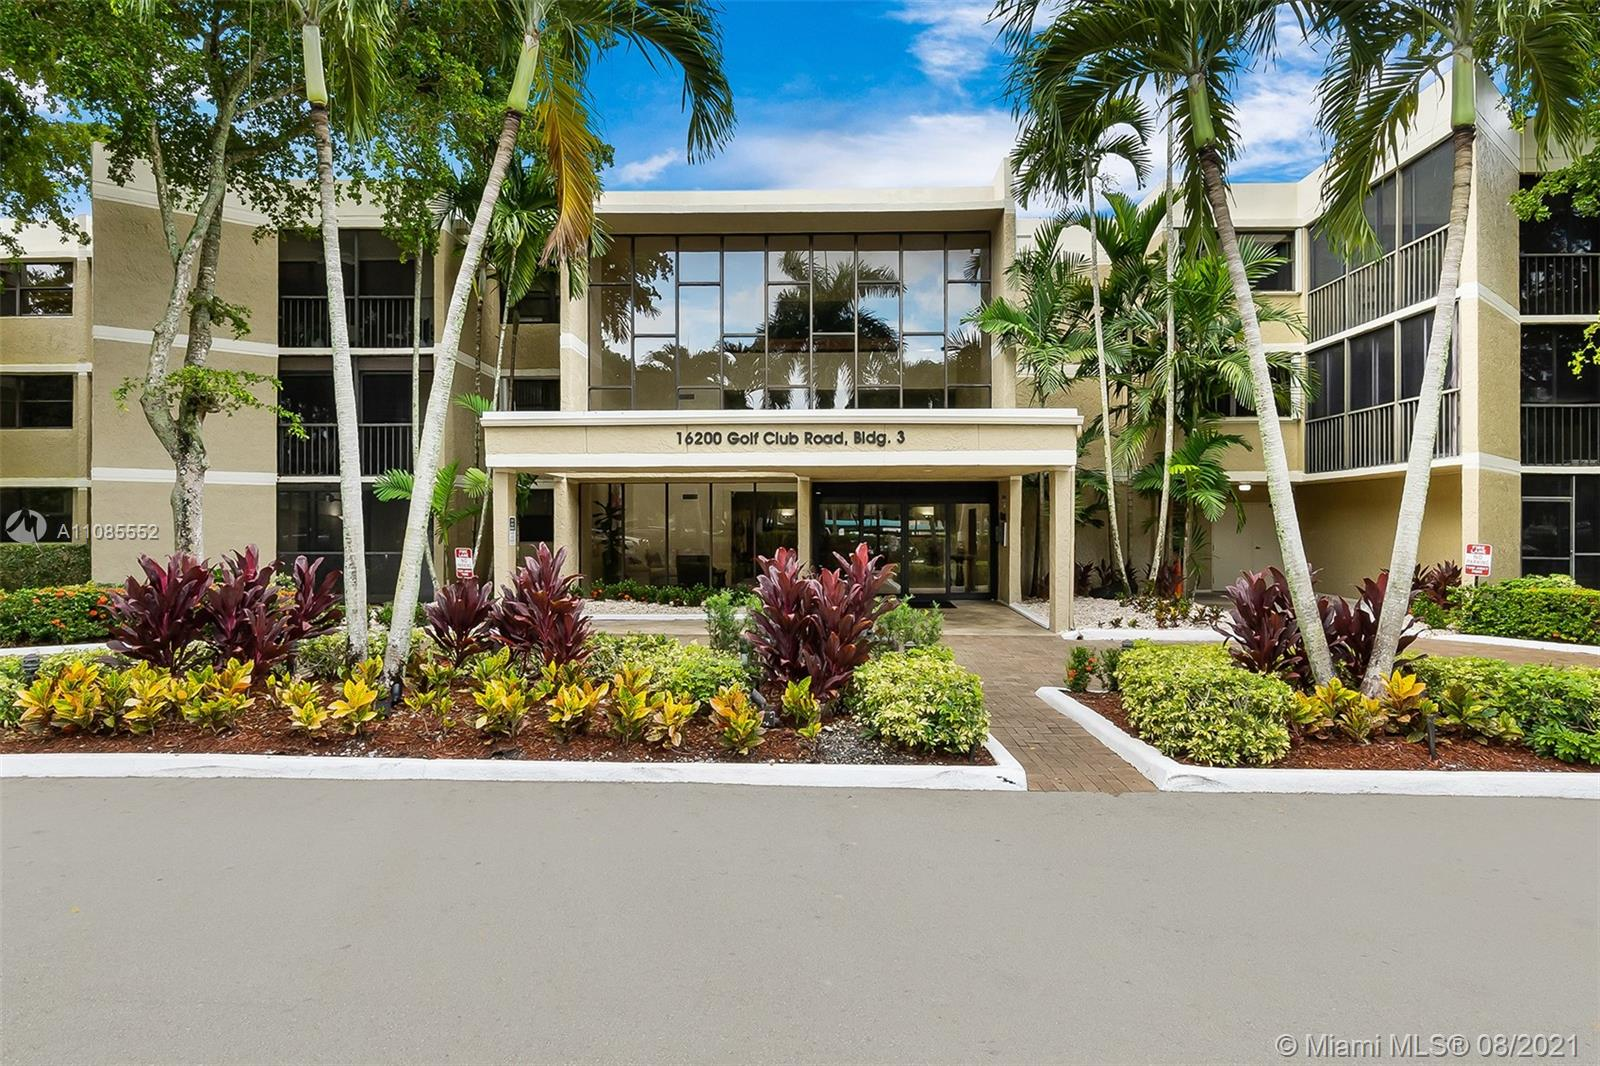 Beautiful 2 bedroom 2.5 bathroom first floor unit overlooking the 16th fairway at Bonaventure Country Club. This spacious unit offers plenty of natural light throughout. Unit has recently gone some renovations, including new porcelain floors in the living area and kitchen, three new tastefully updated bathrooms. Unit also comes equipped with hurricane accordion shutters. Full size washer and dryer in unit. Complex offers a pool and tennis courts steps from the unit. Mandatory membership to the Bonaventure Town Center Club for only $285 per year. Club includes 2 pools, jacuzzi, sauna, full gym with classes, billiards, kids park, bowling, indoor basketball court and much more!! A++++ schools. Come see for yourself before its gone!